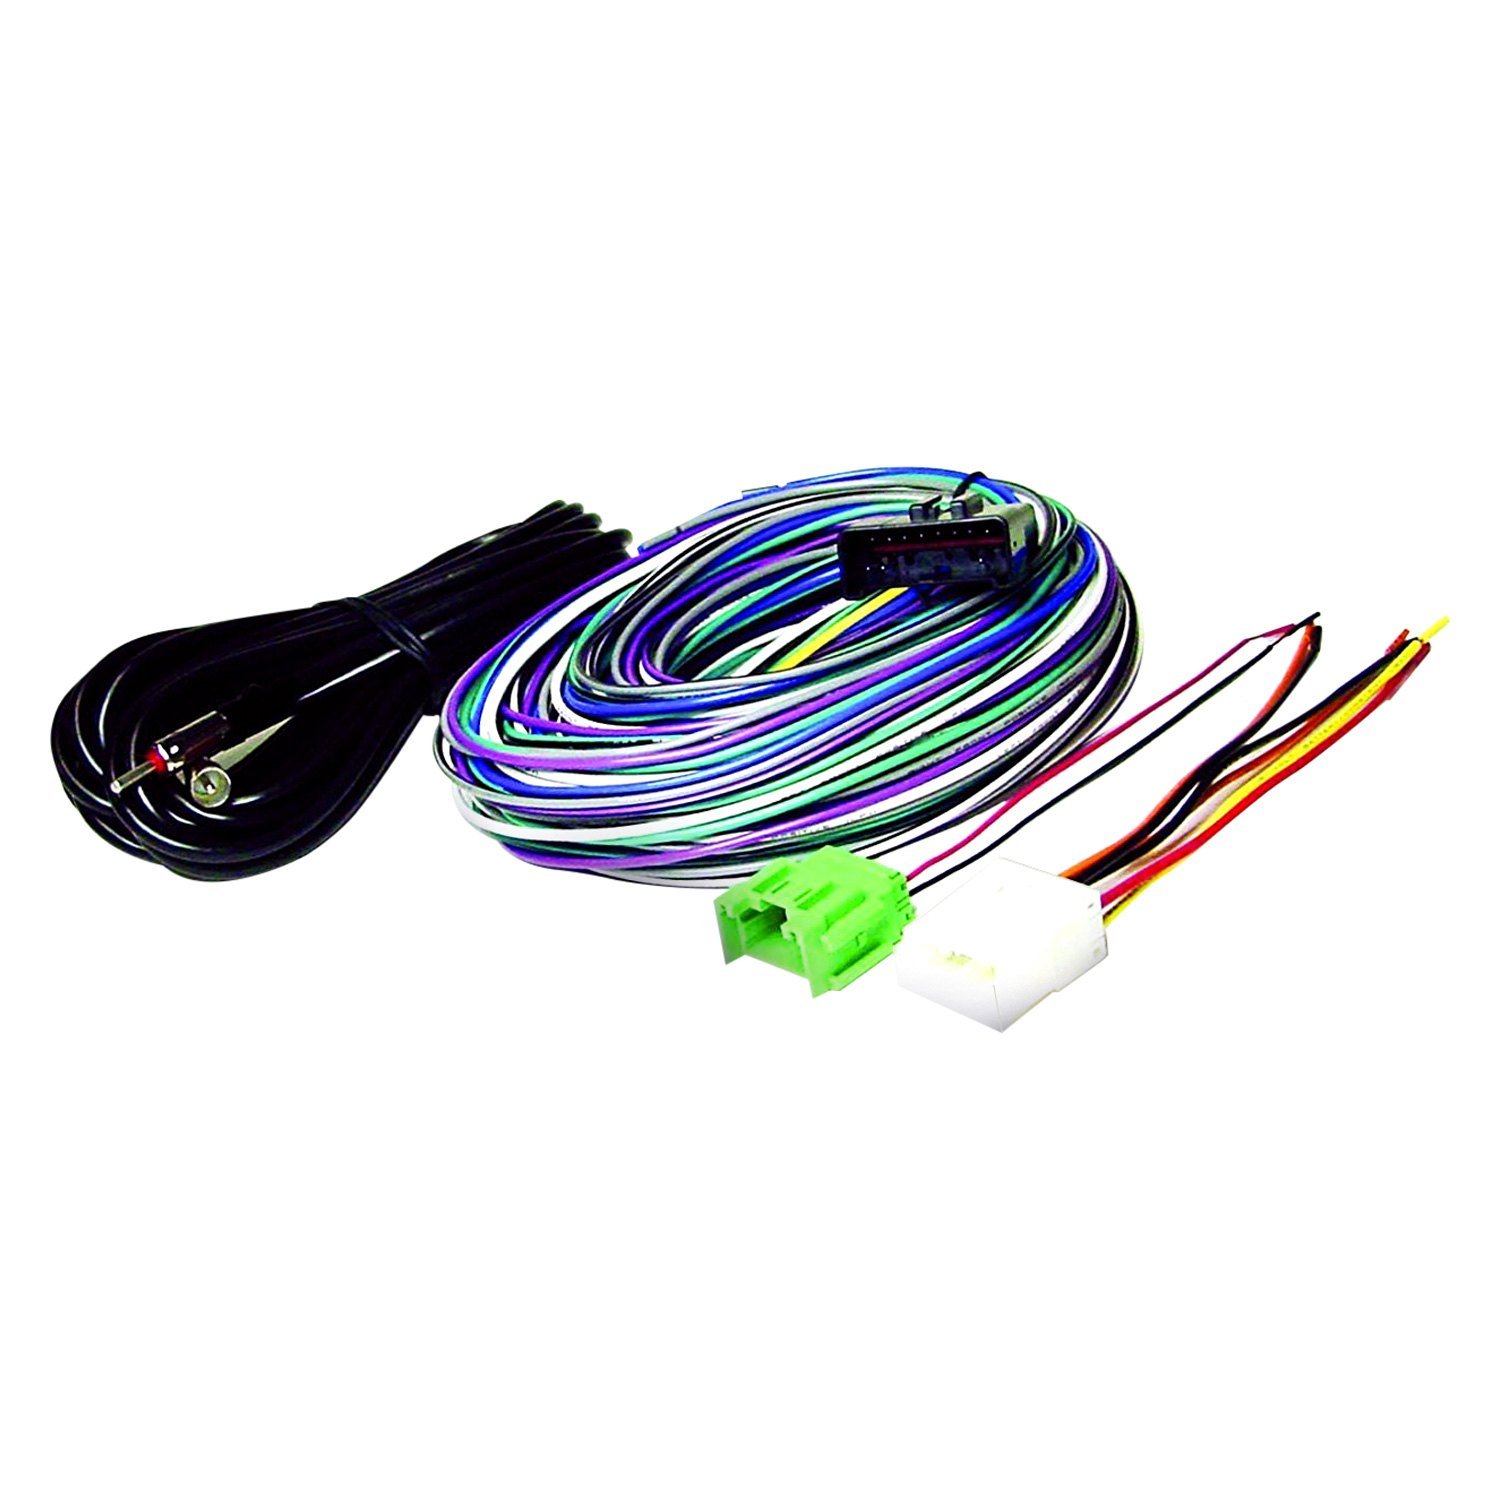 Scosche Radio Wiring Harness For Aftermarket Kit Diagrams Ford Adapter U00ae Fd10b With Oem 05 Malibu Info